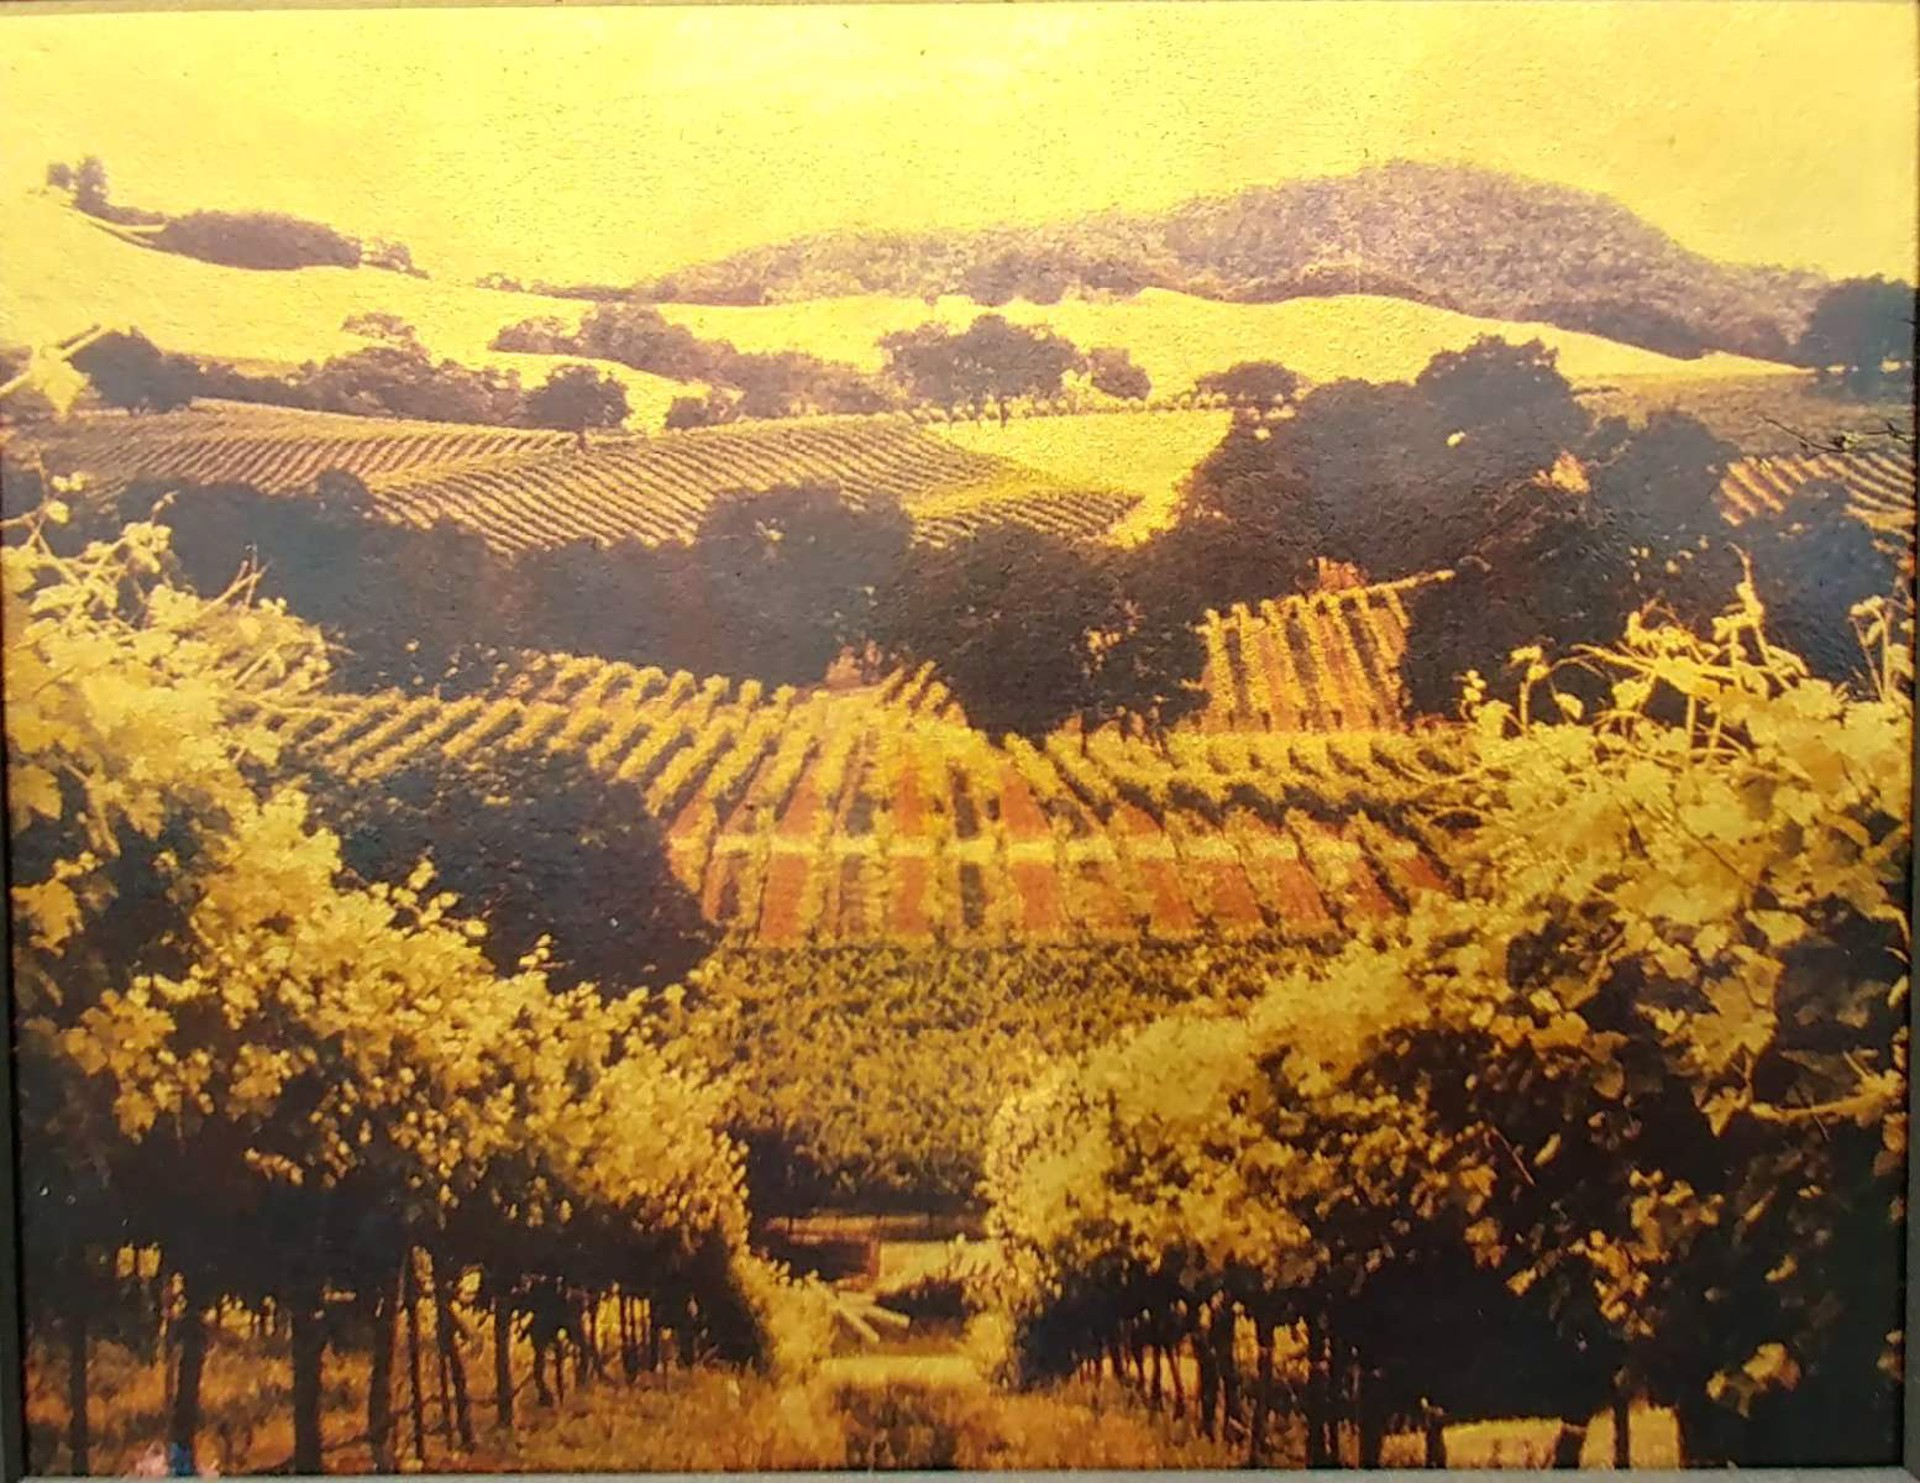 Russian River Valley, Summer Study #2 by Patty Mulligan